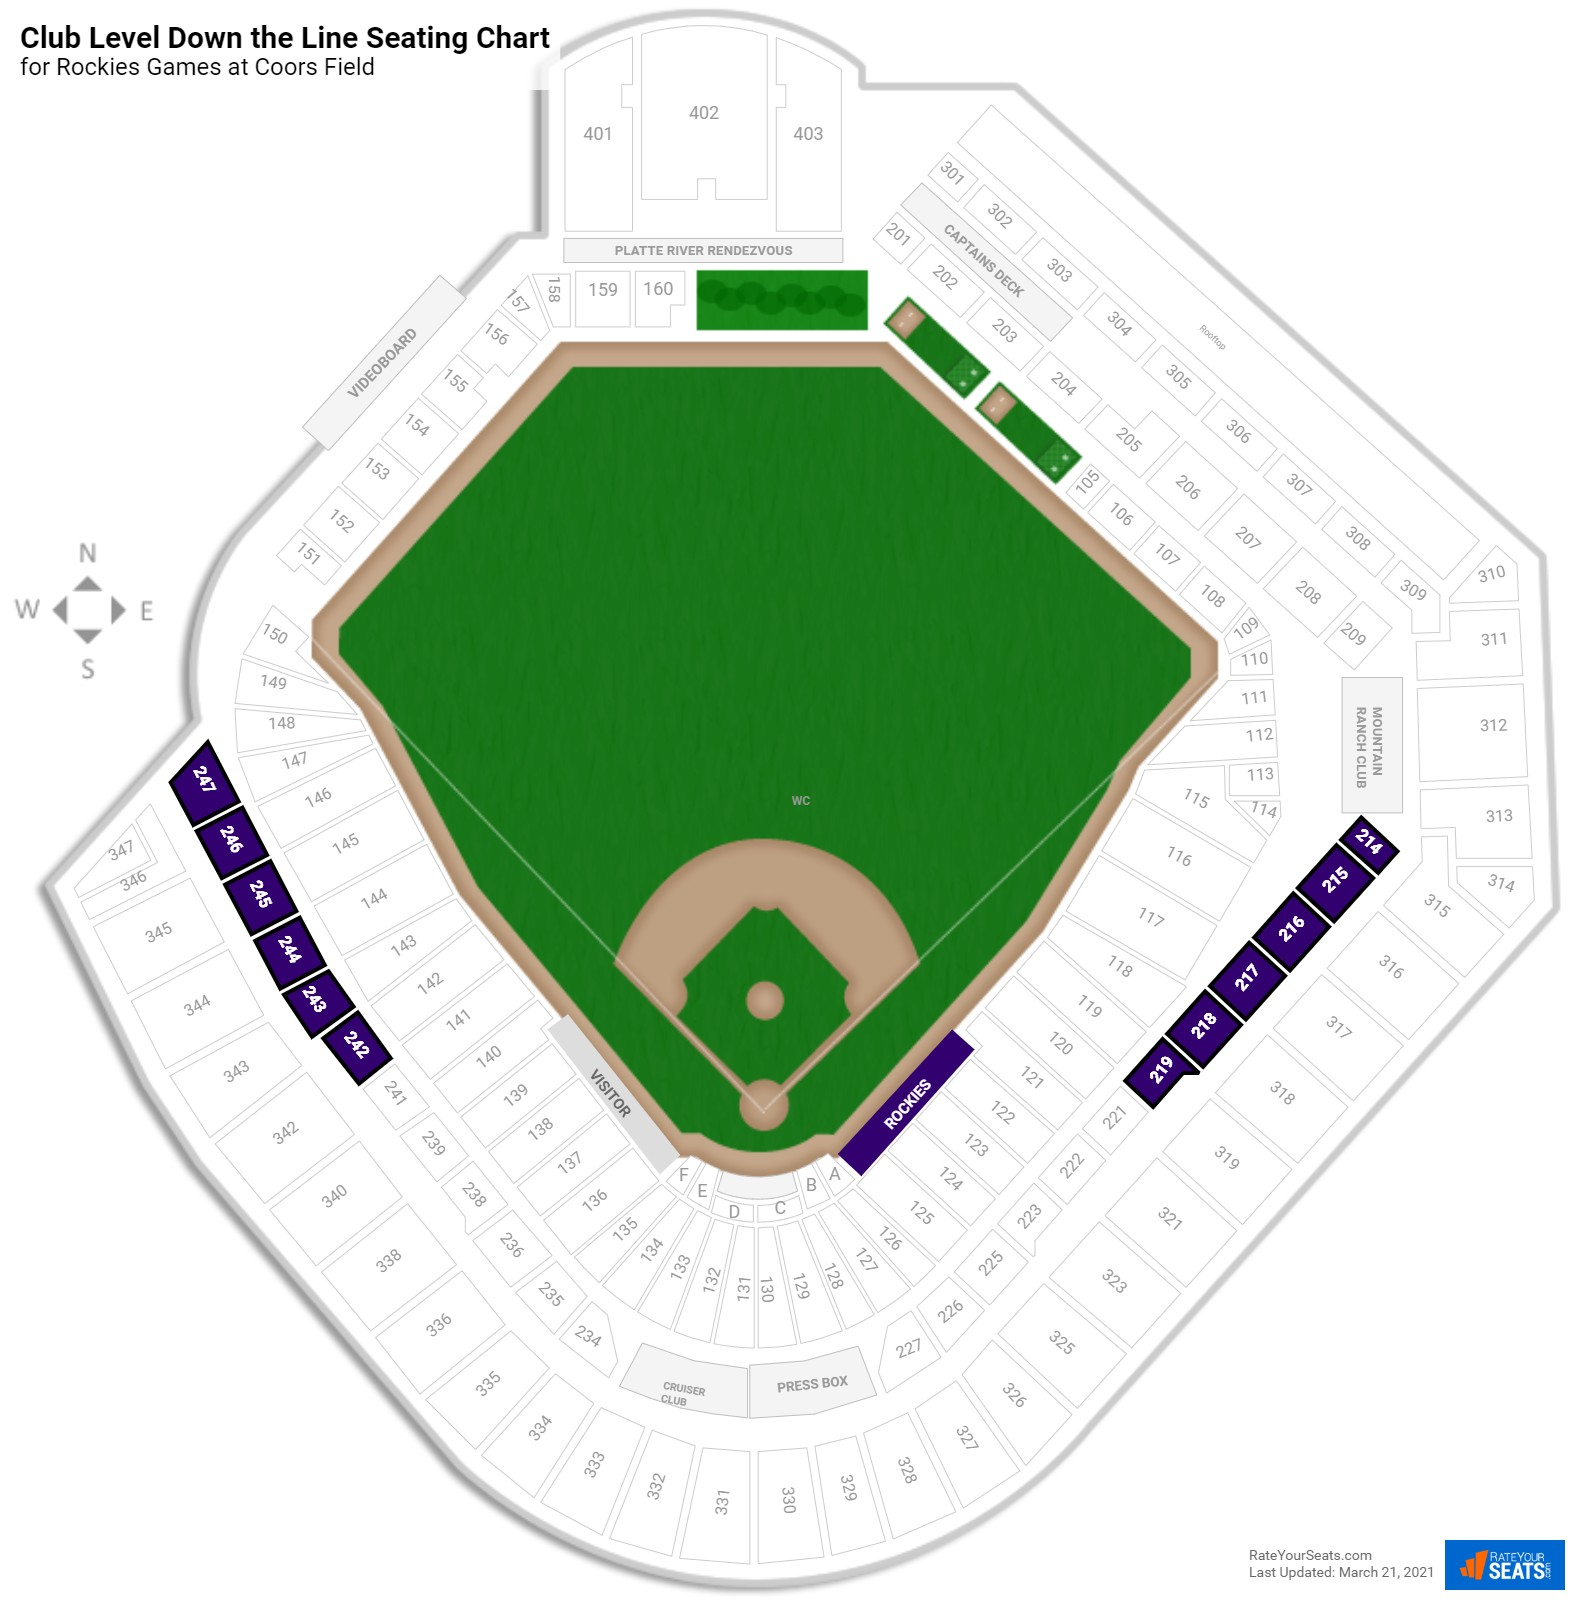 Coors Field Club Level Down the Line seating chart